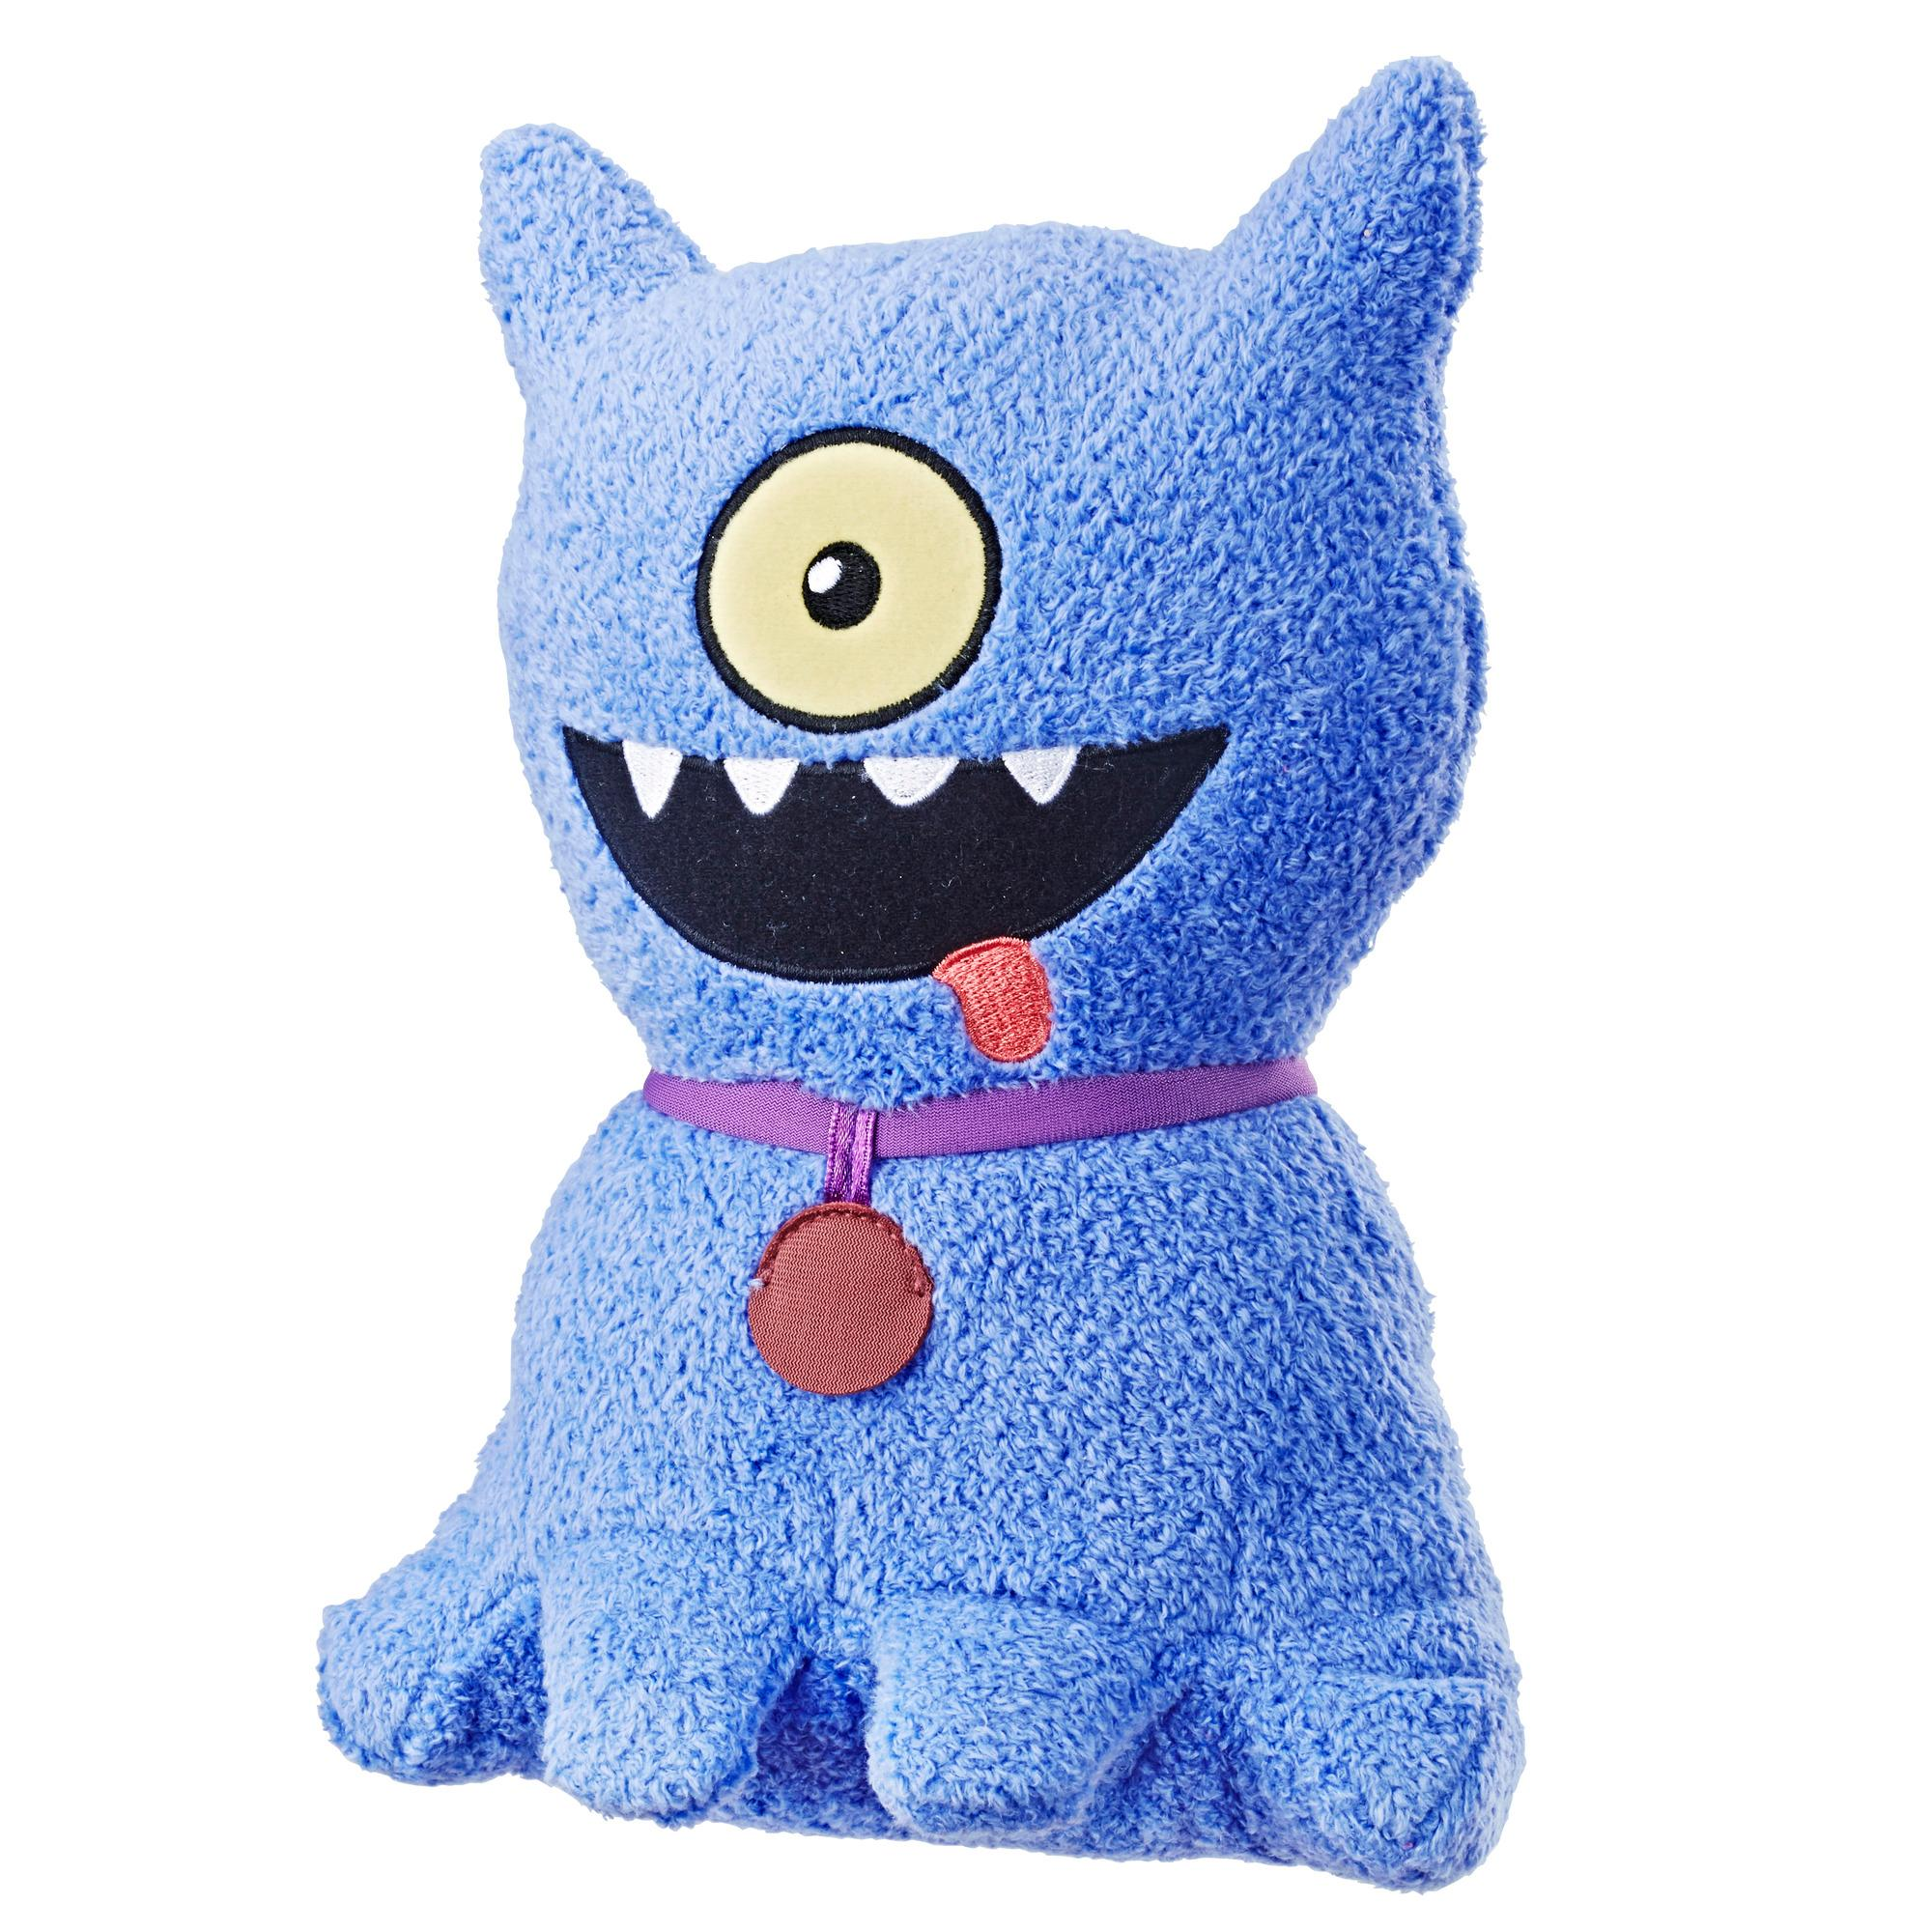 UglyDolls Feature Sounds Ugly Dog, Λούτρινα that Talks, 25 εκατοστά